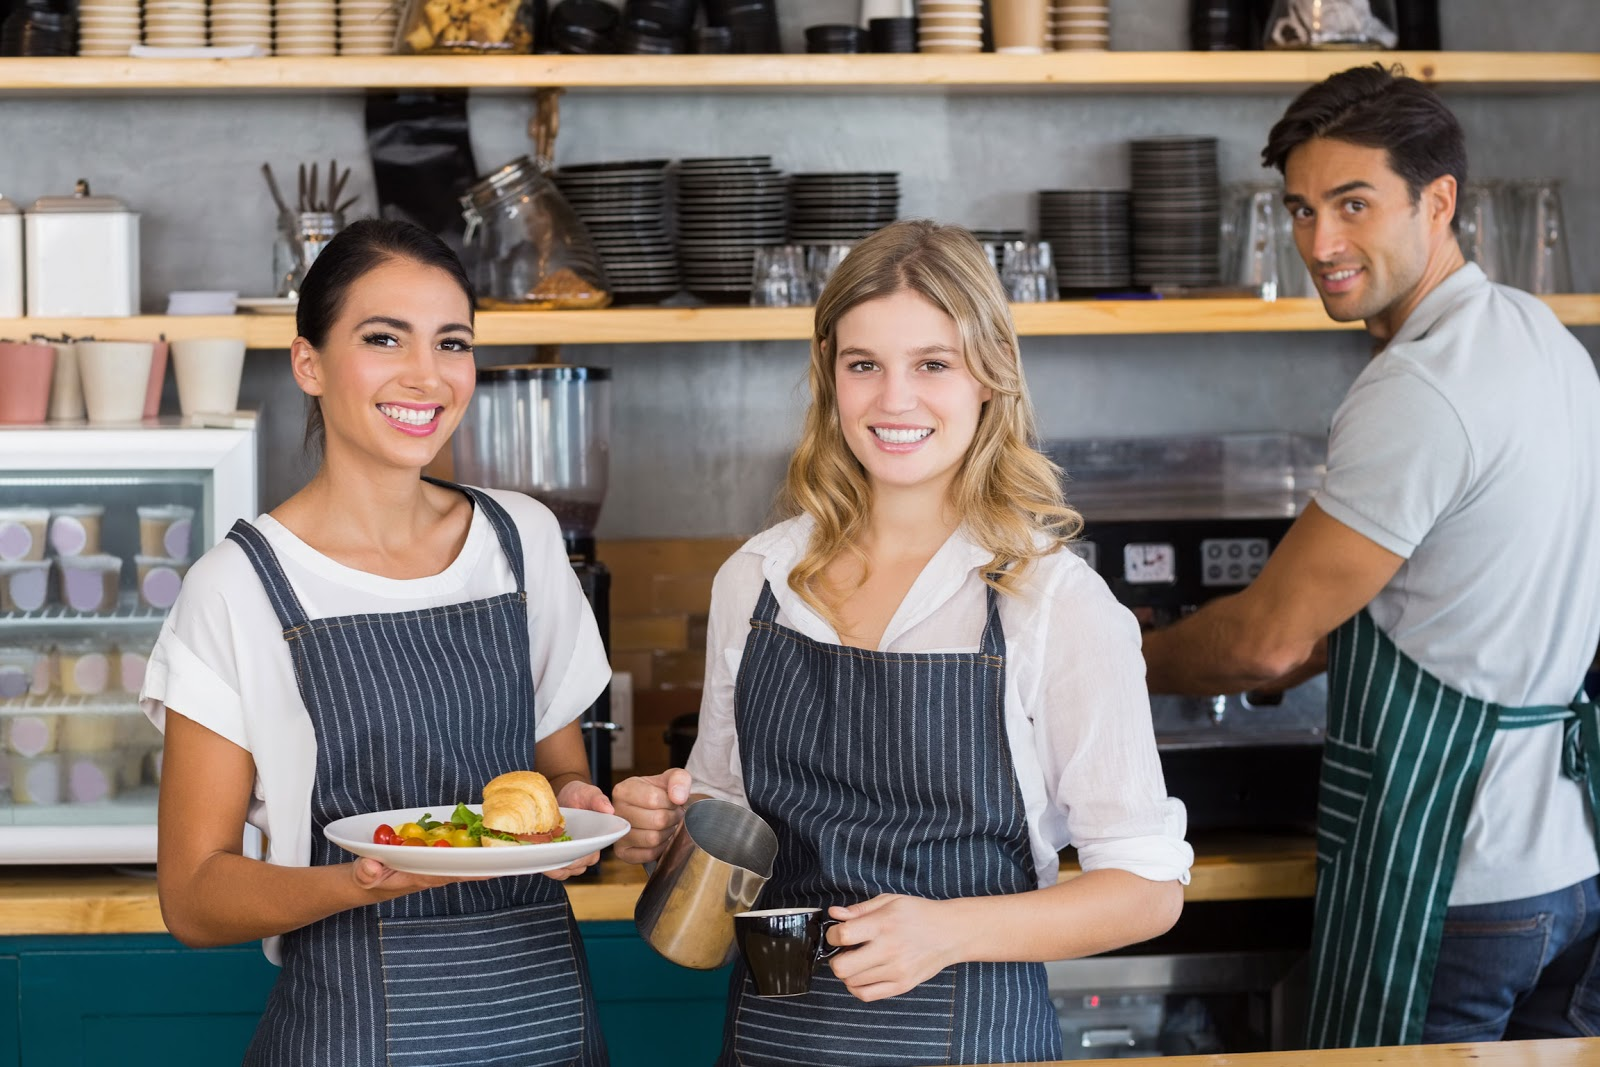 Three servers working behind the counter and smiling at camera